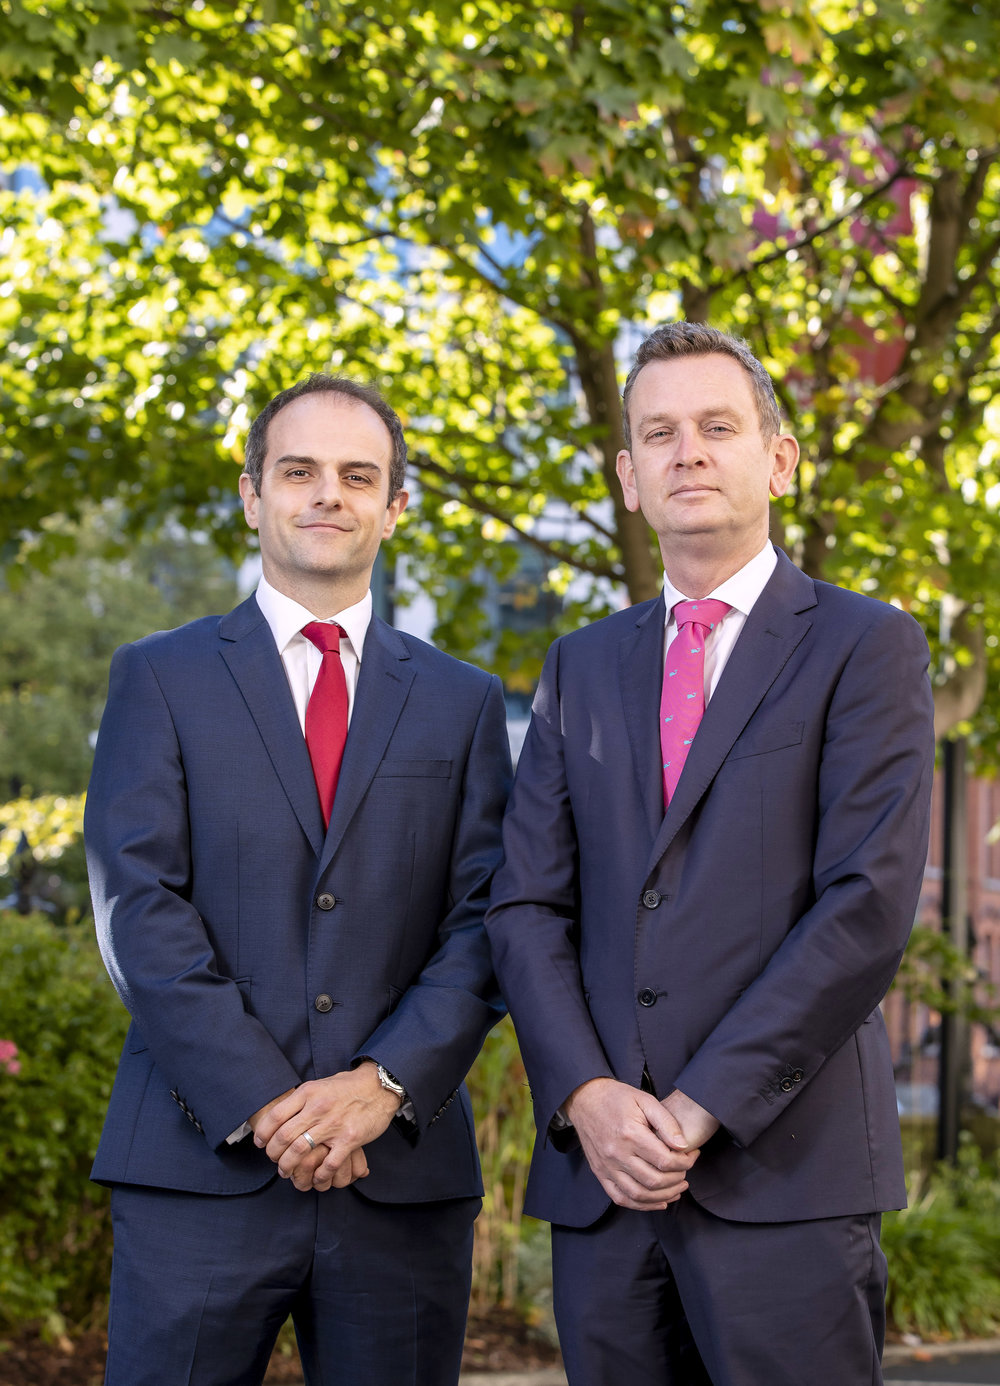 Photo:  (From Left to Right) Matthew Howse (Partner, Eversheds Sutherland) and Alan Murphy (Managing Partner, Eversheds Sutherland).